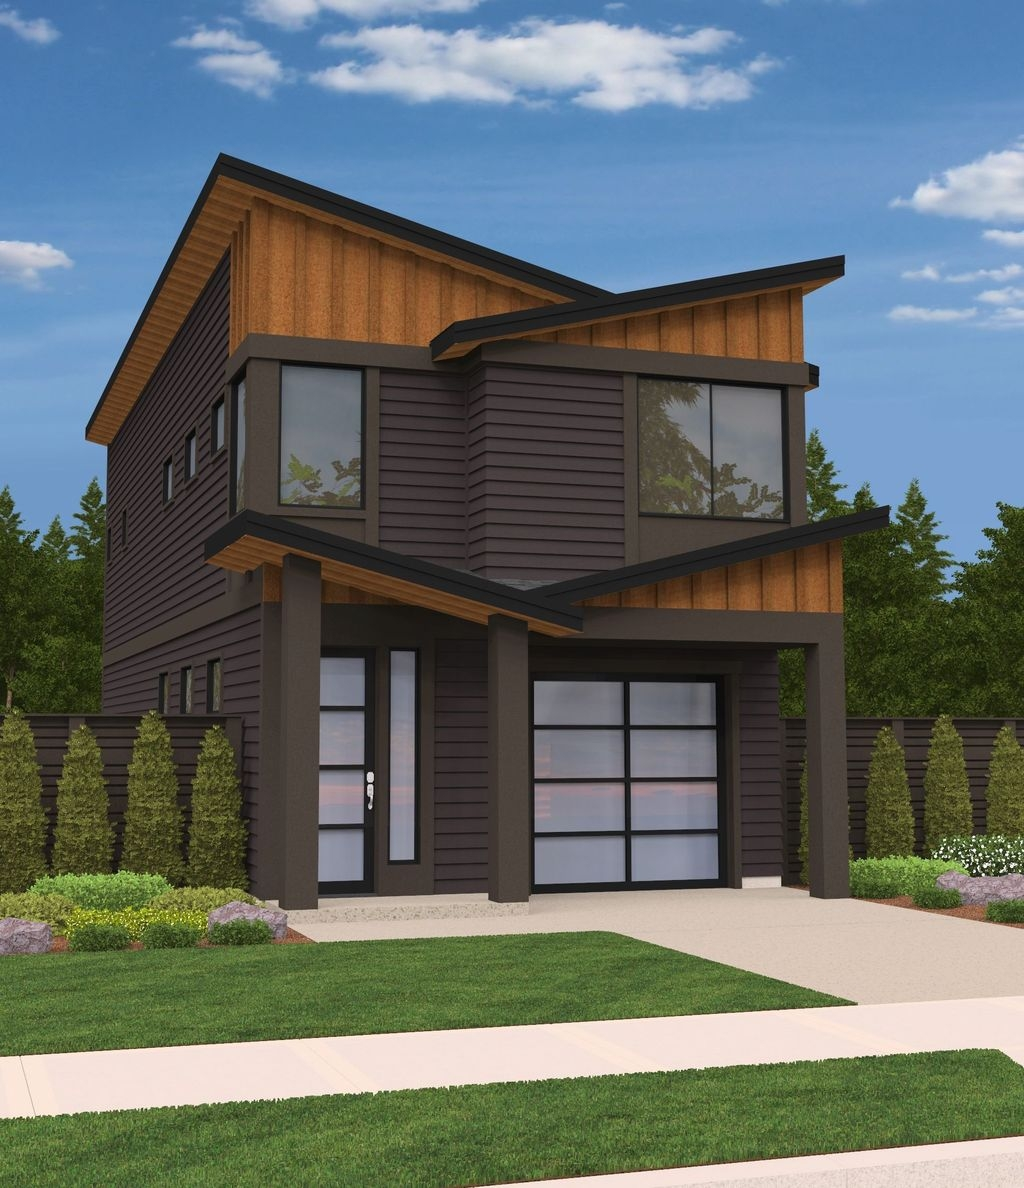 Charming Minimalist House Plan Ideas That You Can Make Inspiration01